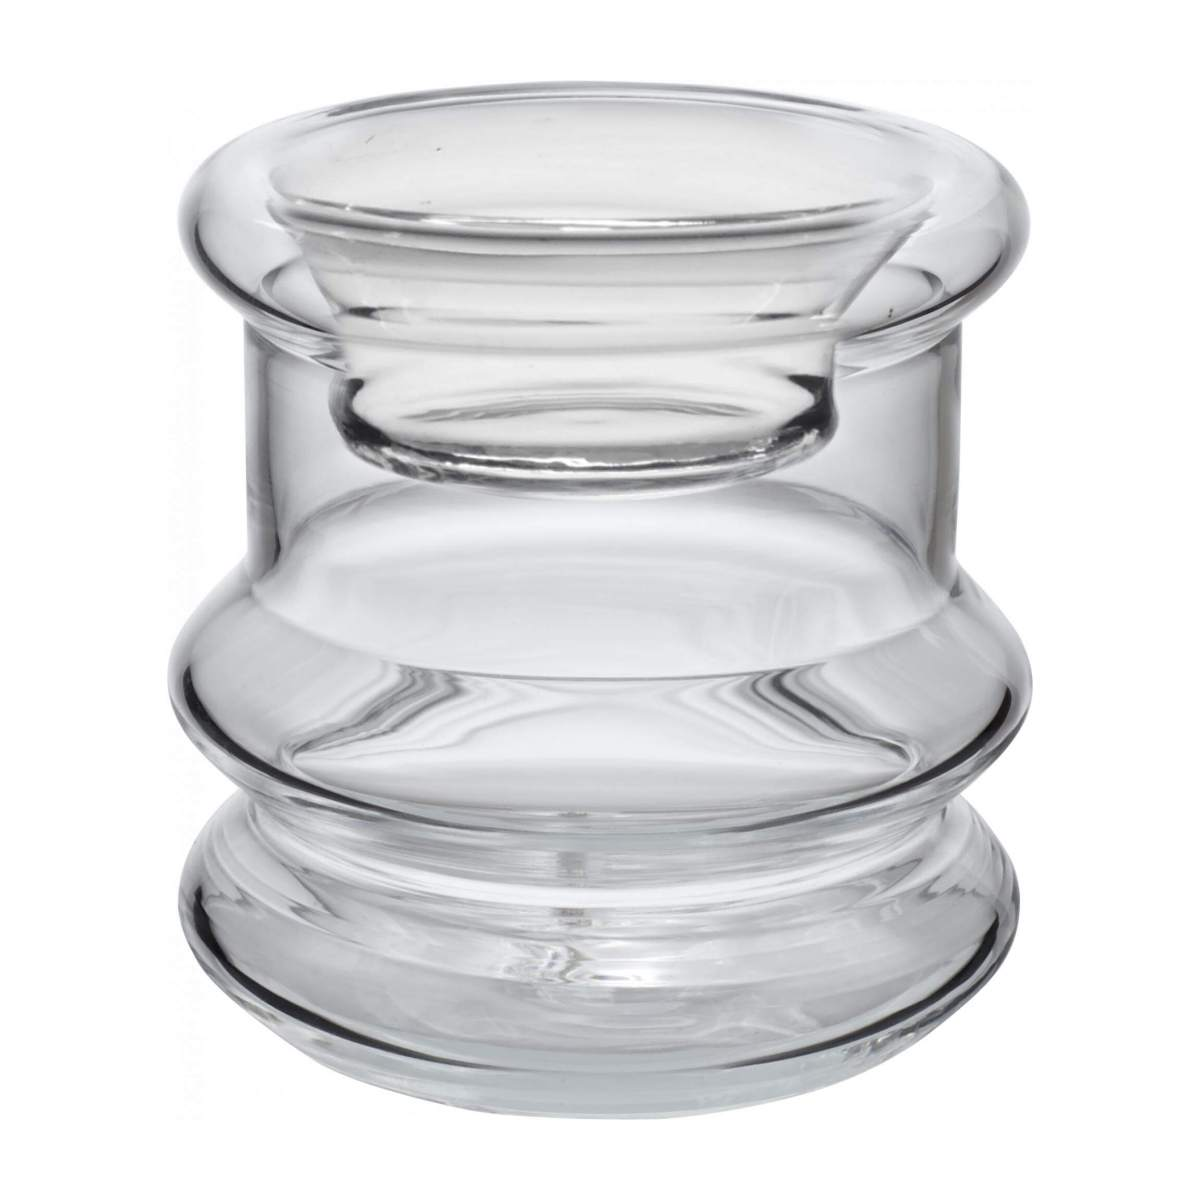 Small glass candlestick n°1